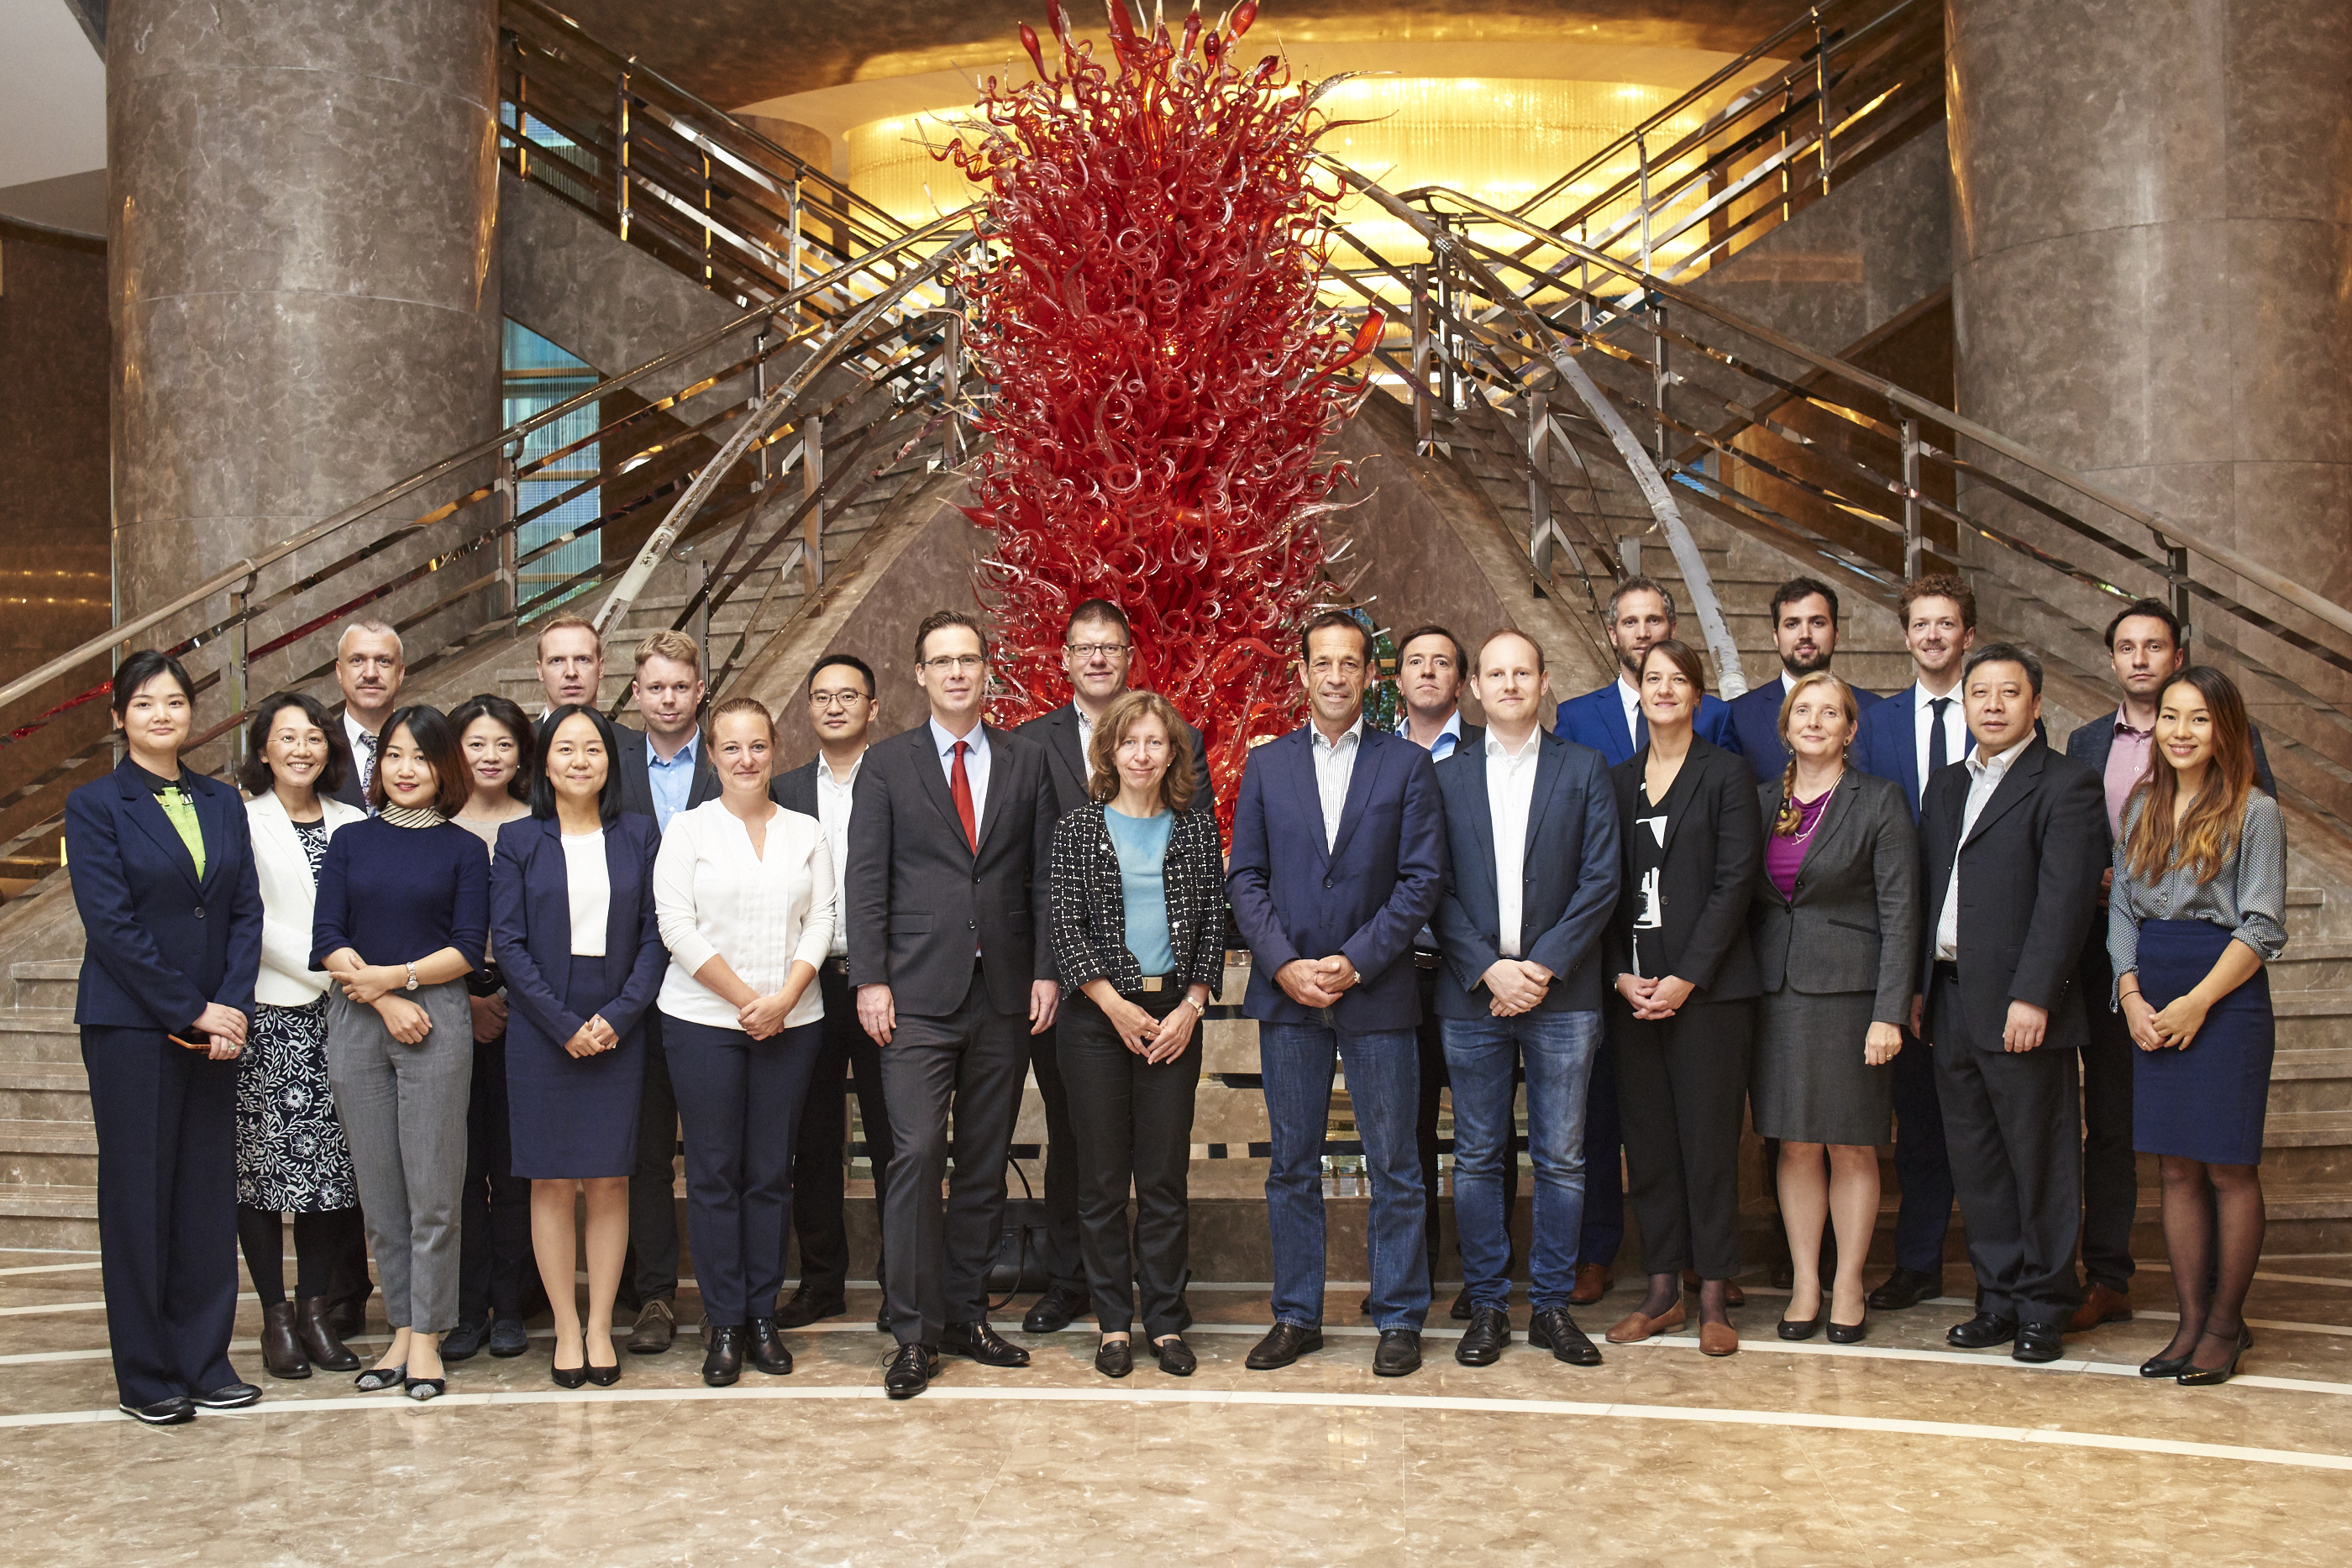 Group Photo of the Participants at the 2nd Meeting of the German Local Business Advisory Council